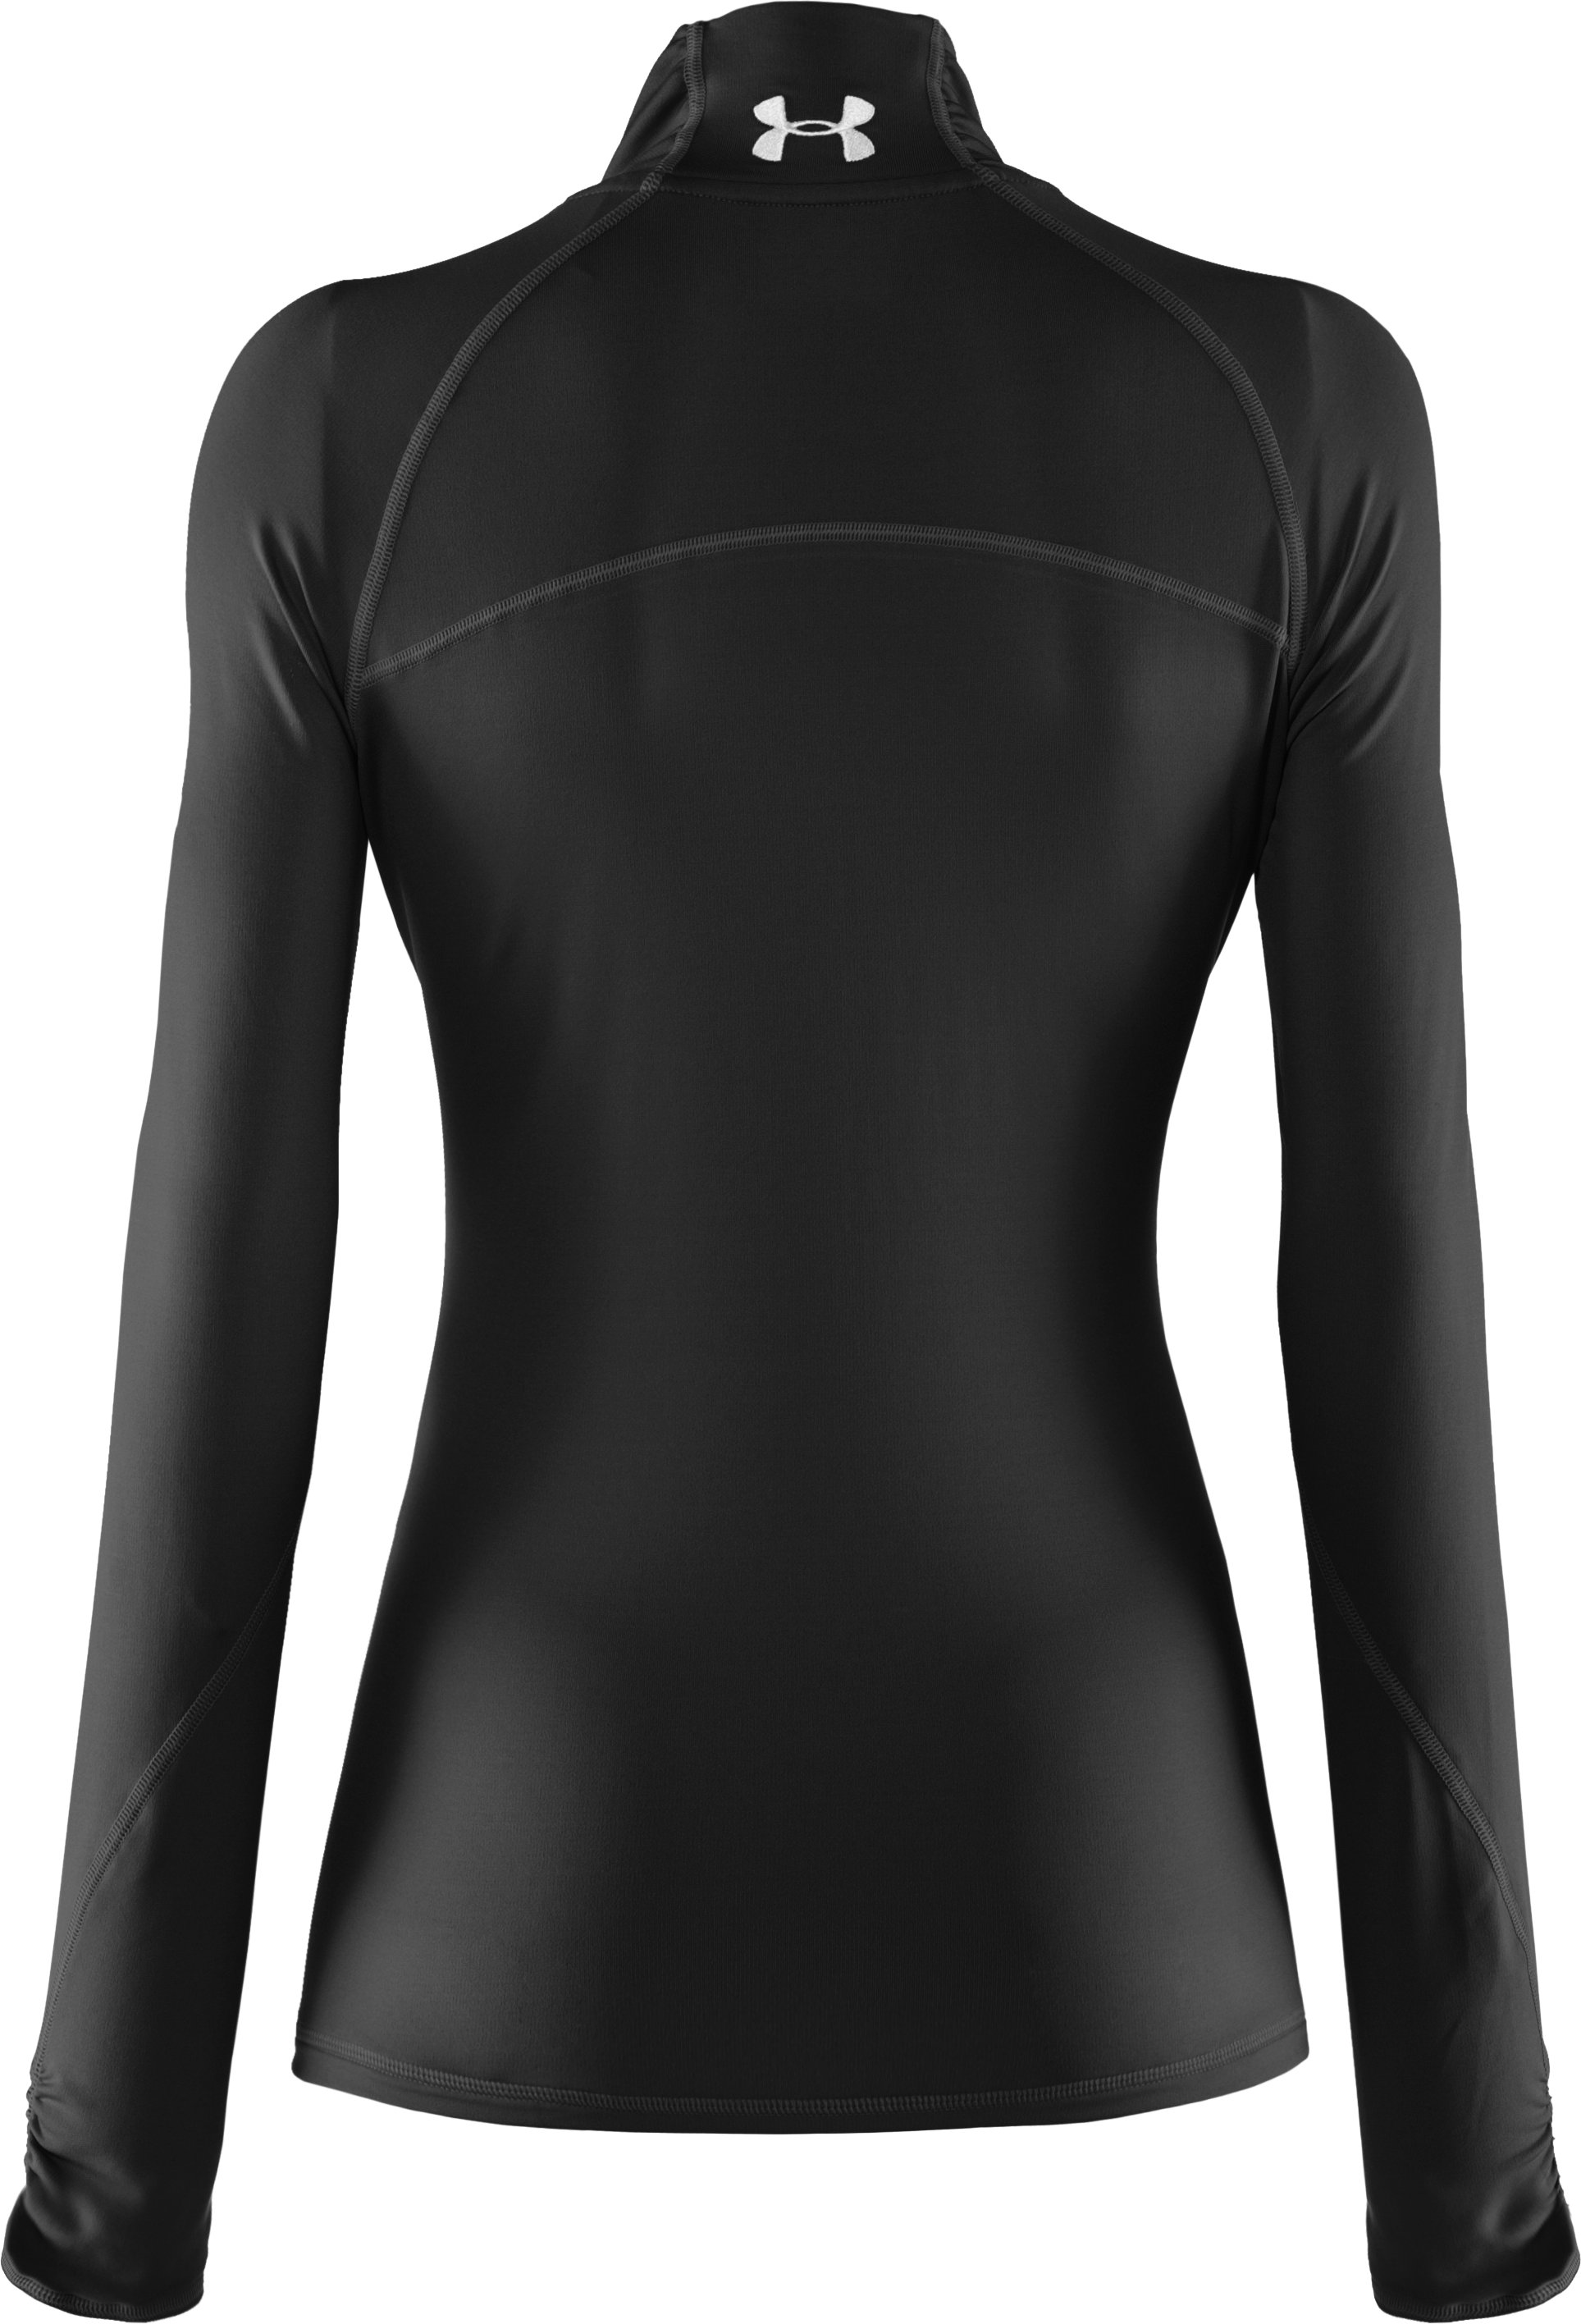 Women's Fitted ColdGear® ¼ Zip, Black